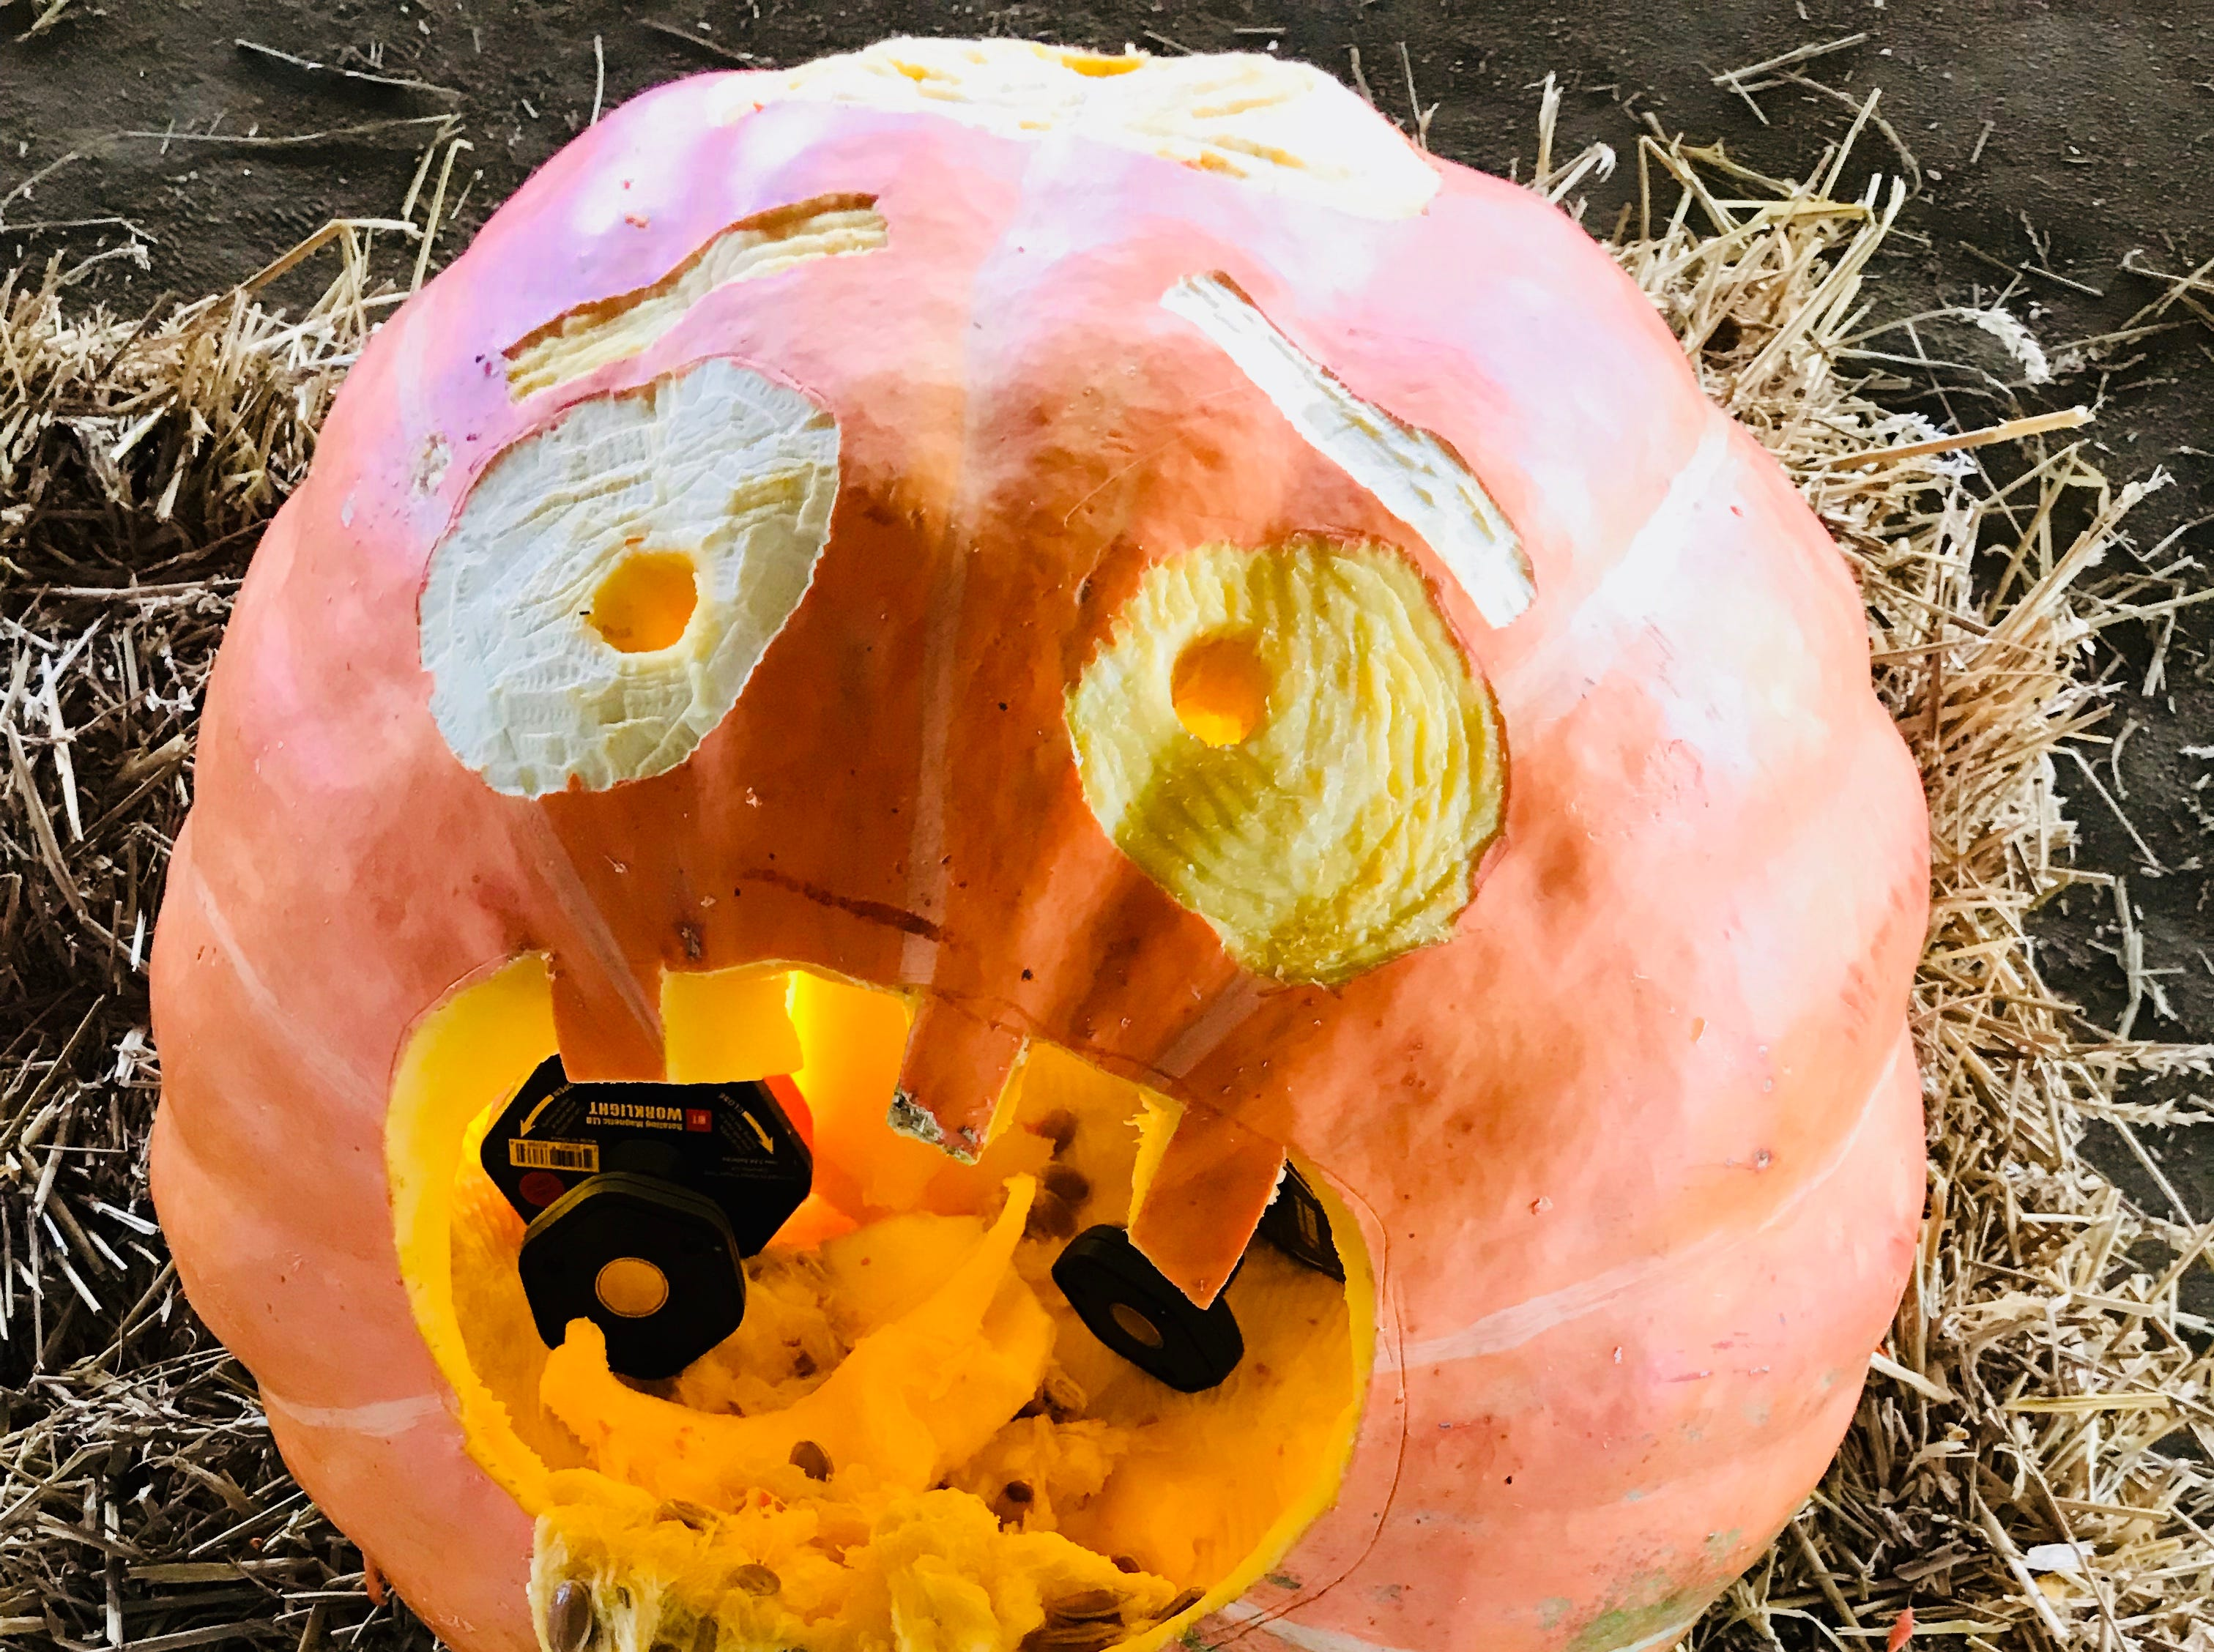 Pumpkin flu affected several carvings at the first Great Delaware Pumpkin Carve, this one by Team iHeart.